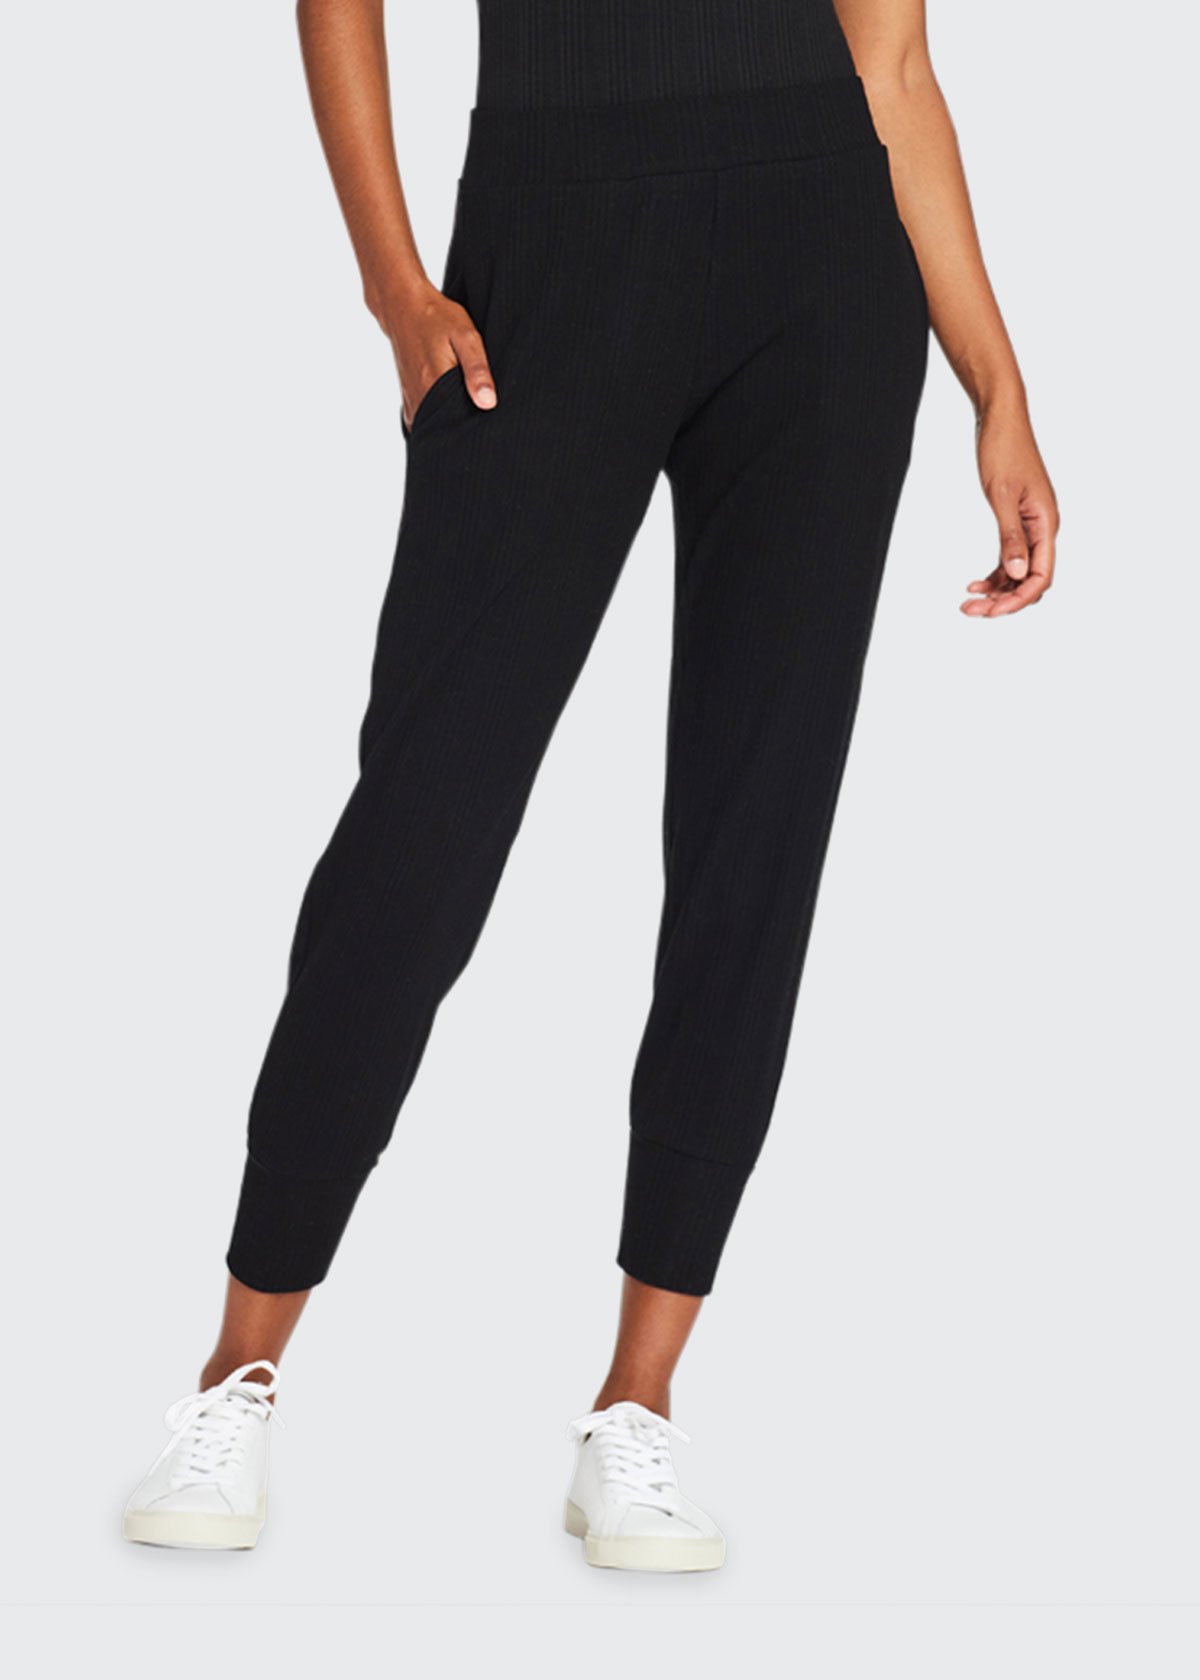 Vitamin A WEST RIBBED SKINNY-FIT CROPPED JOGGER PANTS